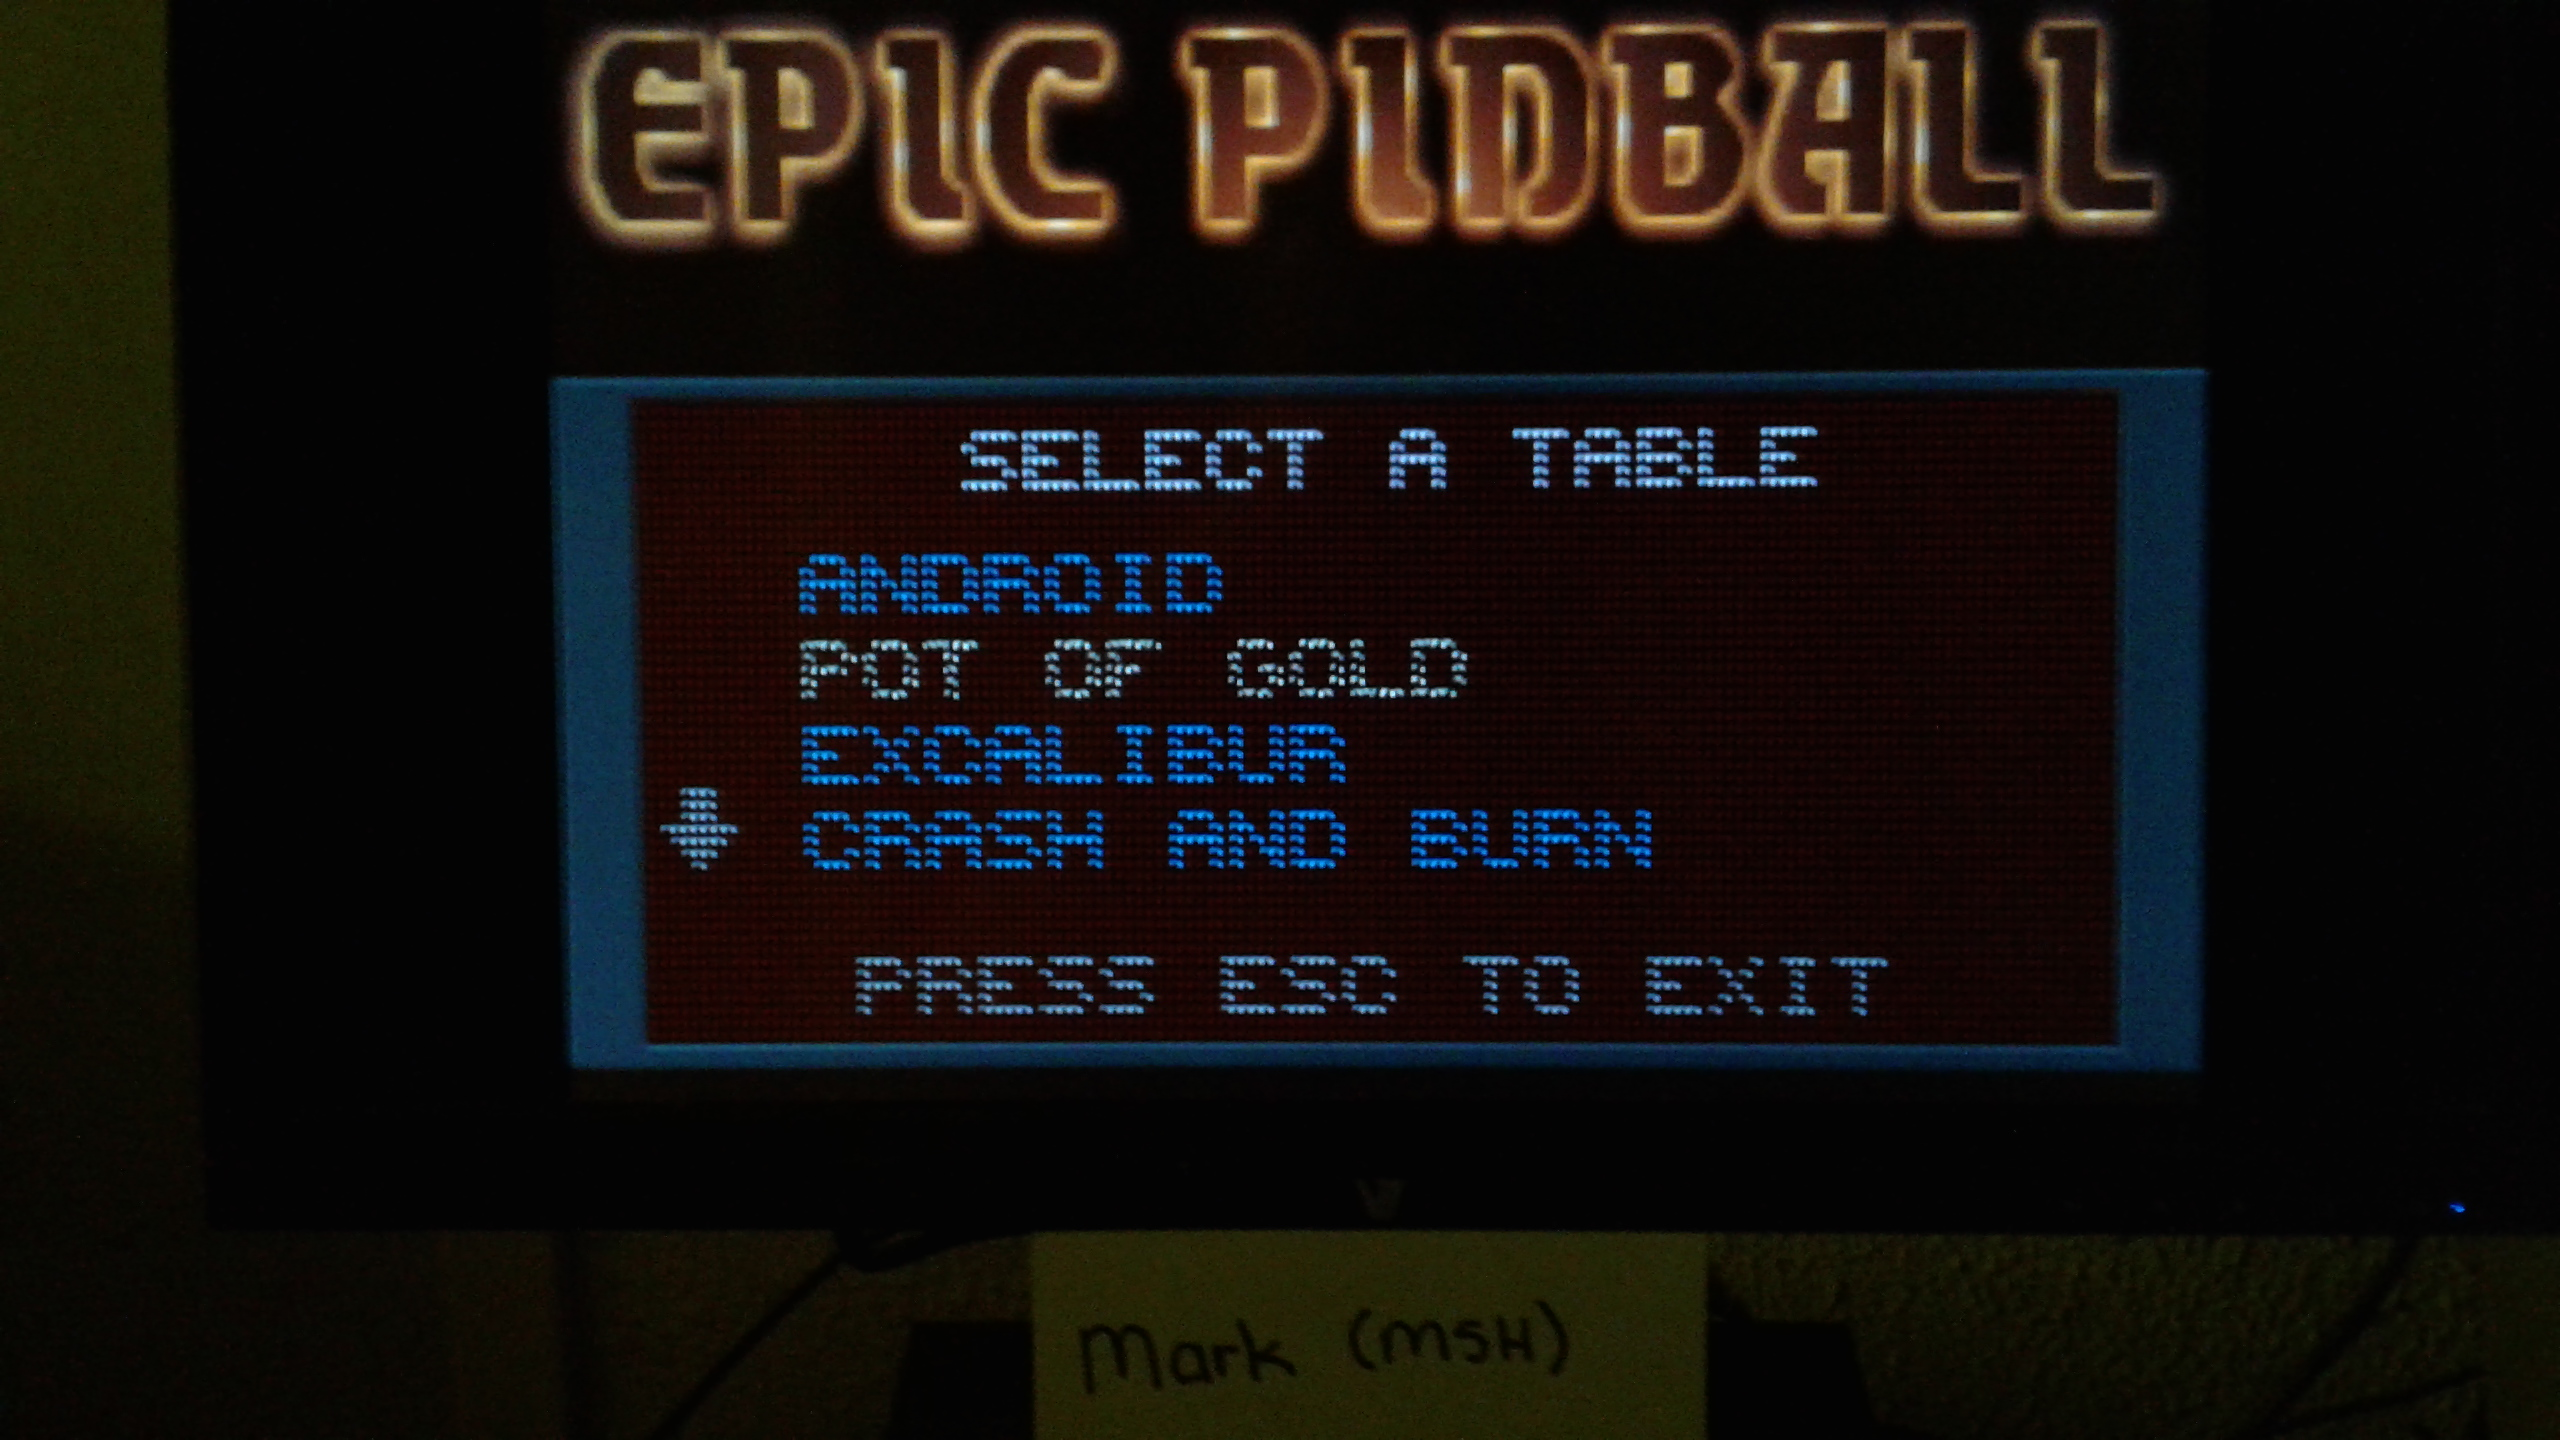 Mark: Epic Pinball: Android (PC Emulated / DOSBox) 135,435,000 points on 2019-05-11 23:47:13